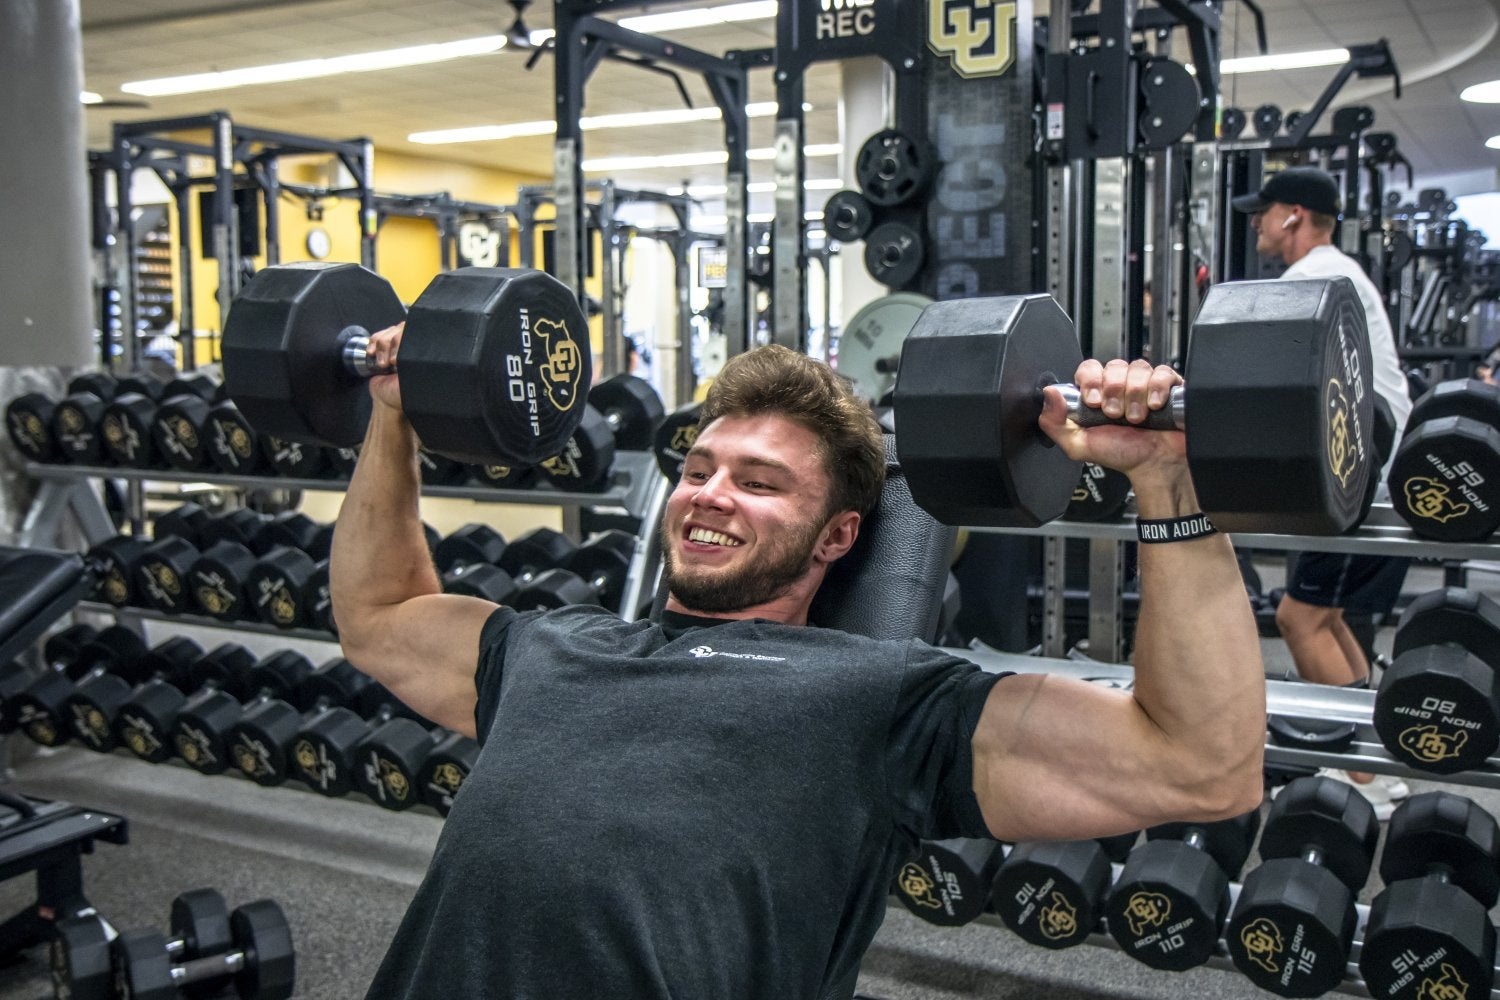 strong guy incline benching 80 lb dumbbells